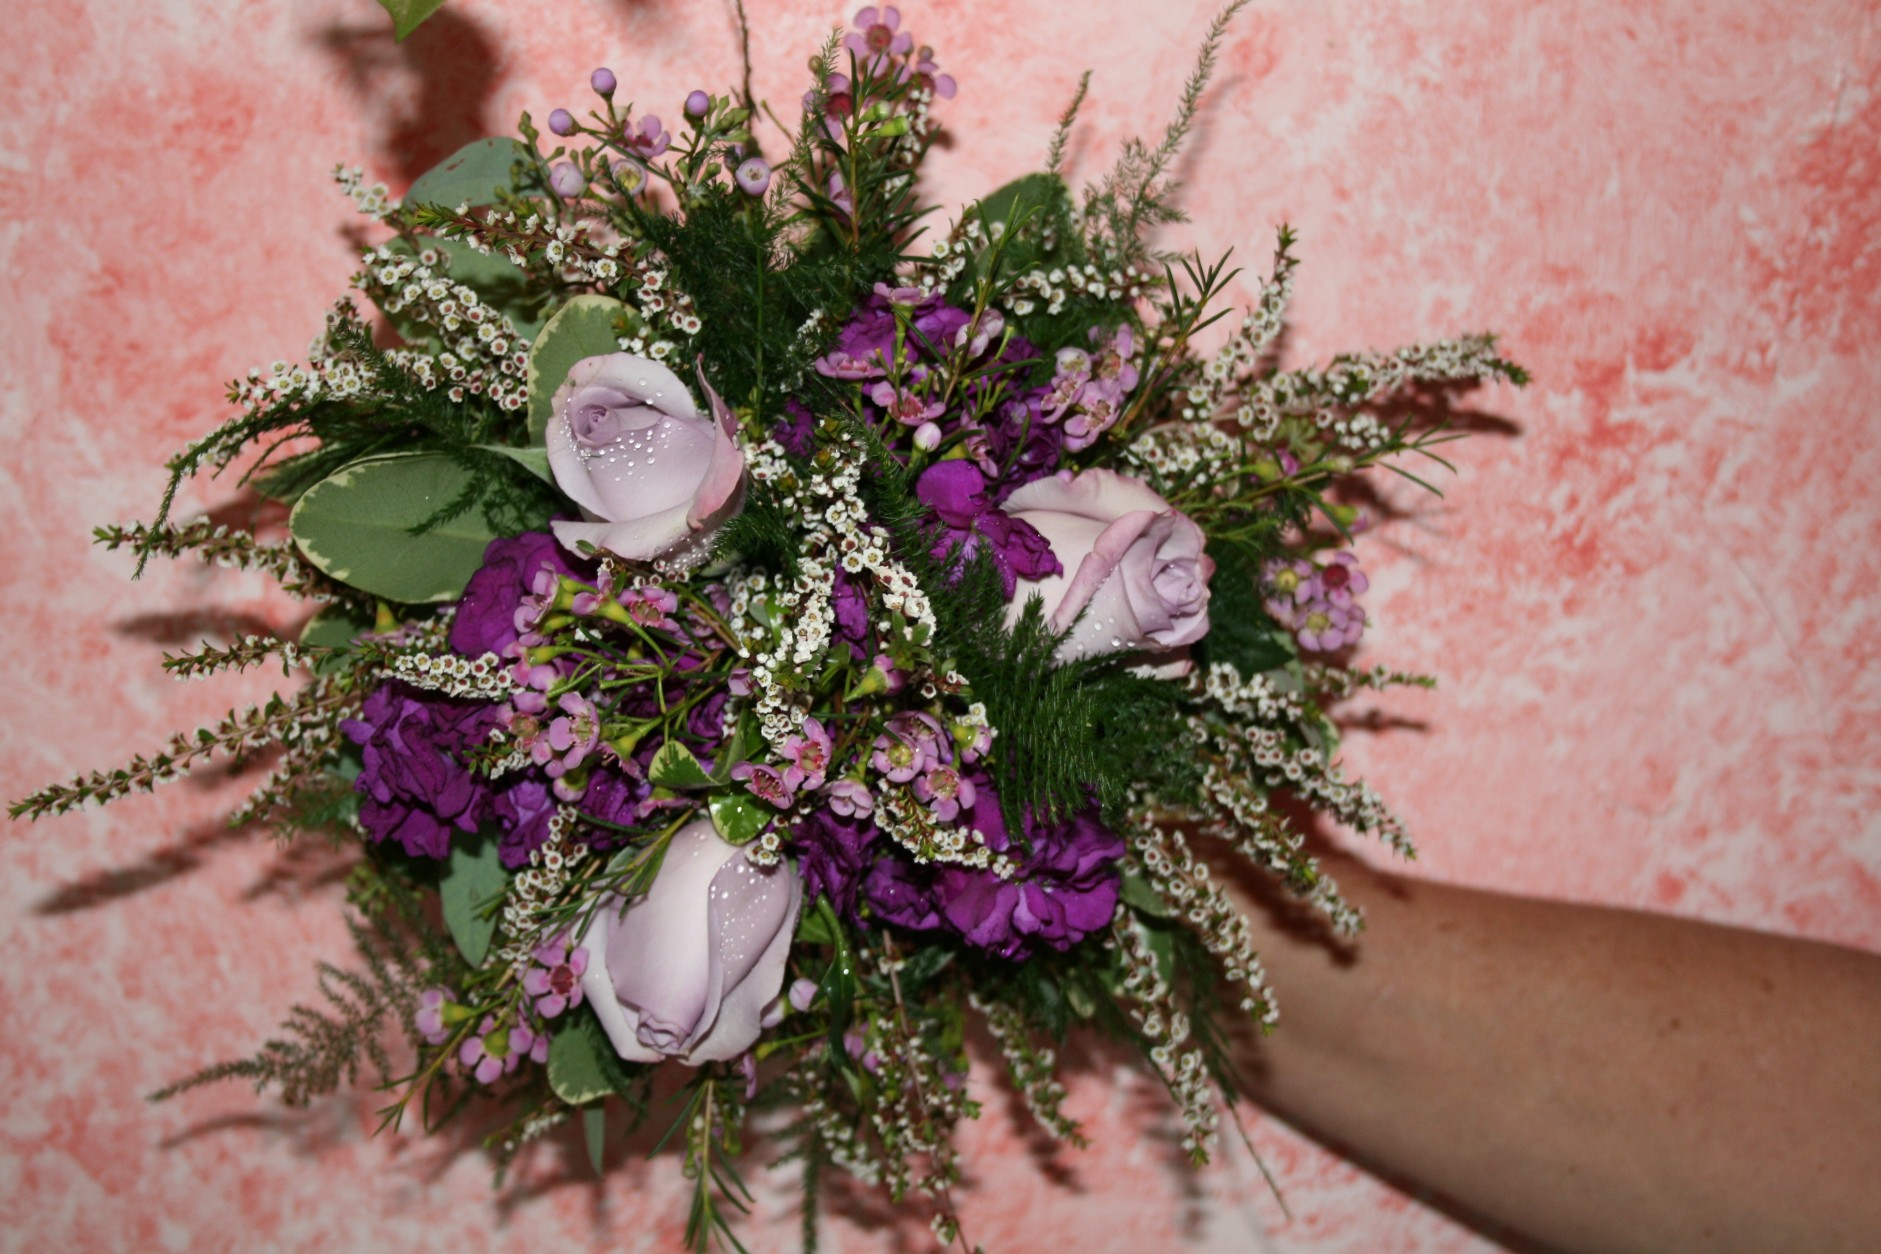 LAVENDER & PURPLE ROSE BOUQUET